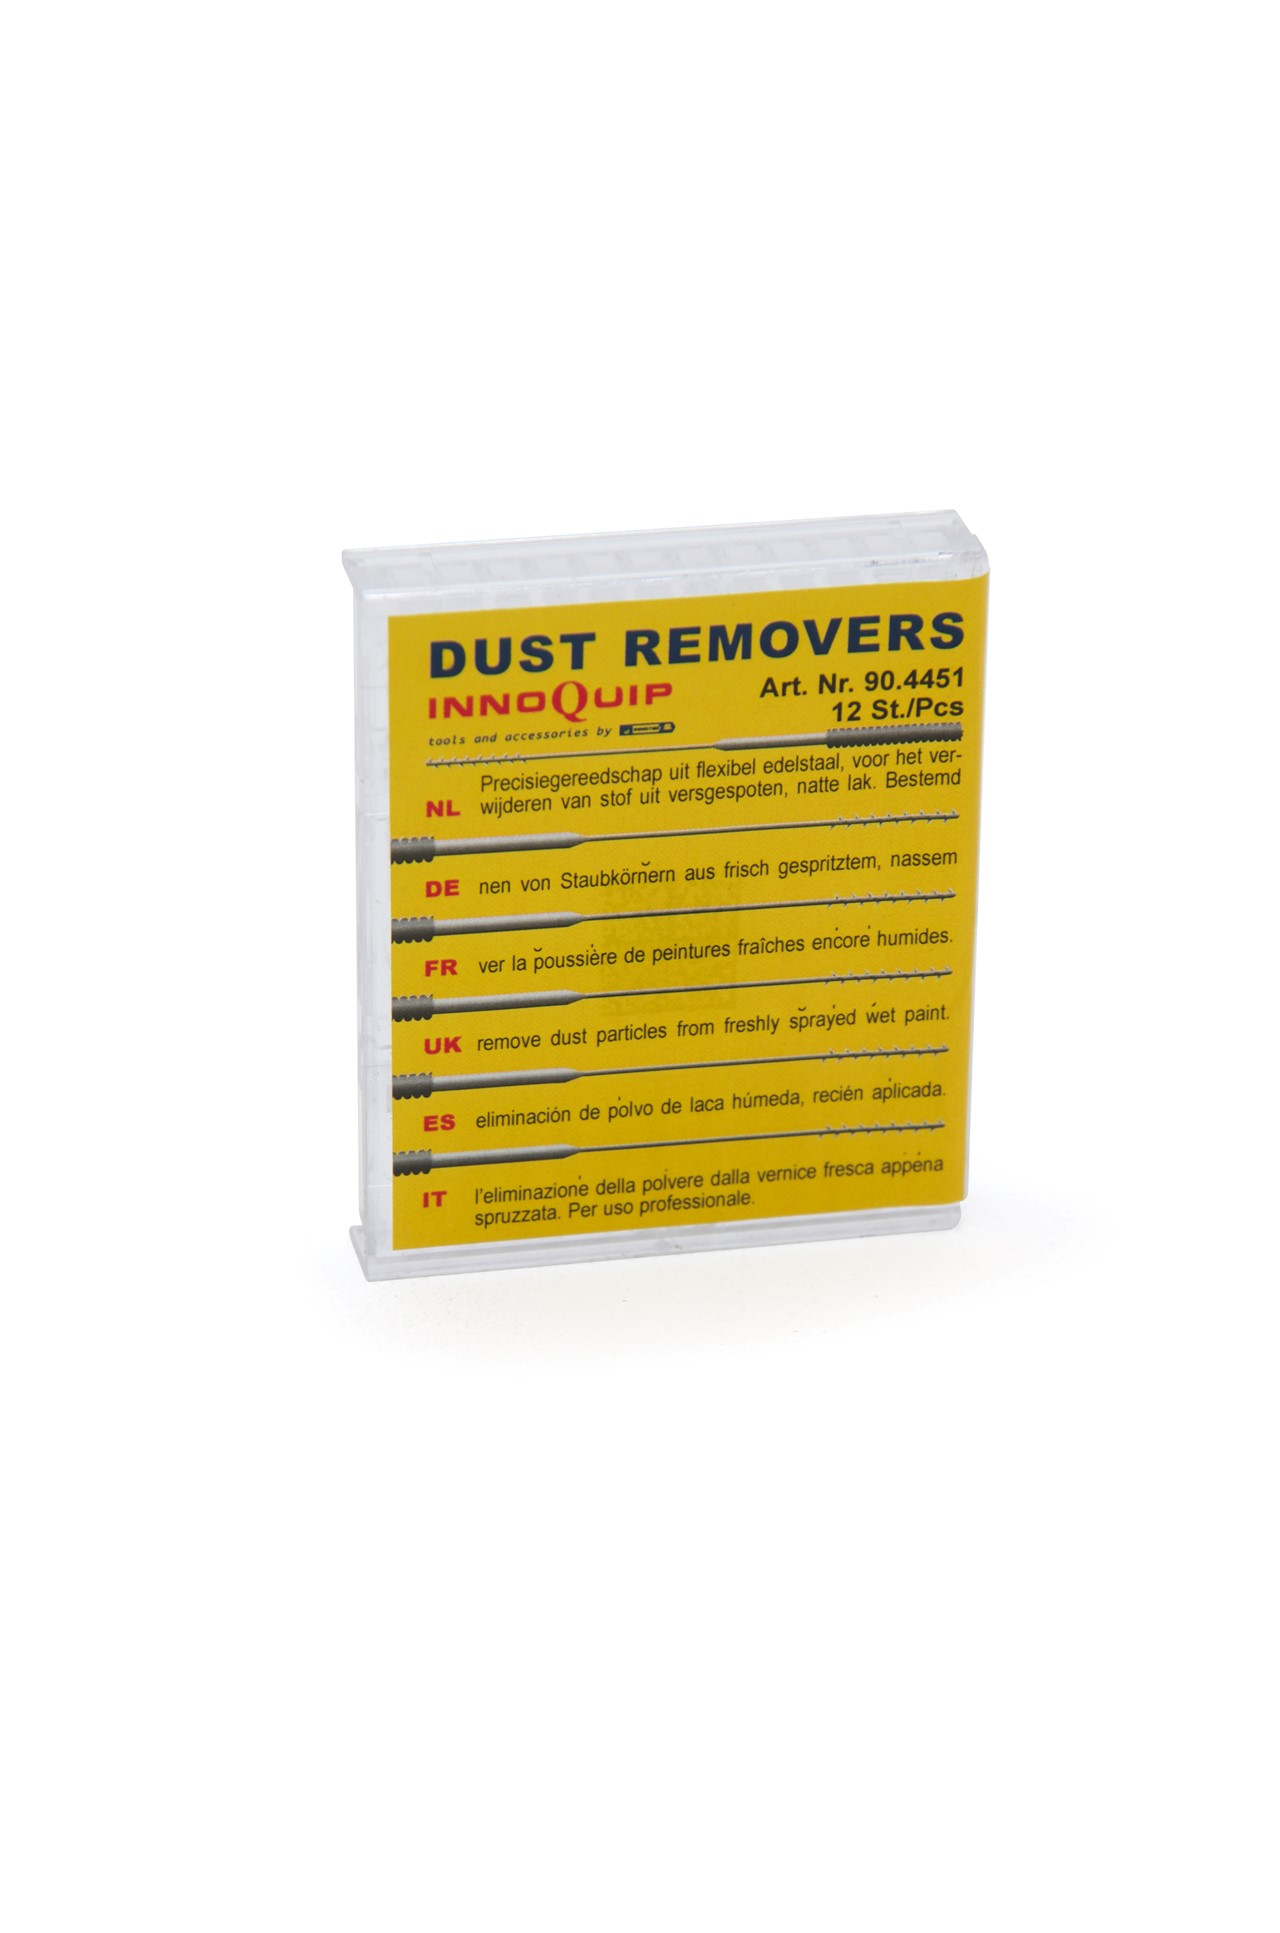 1641_Dust Removers-12st.jpg